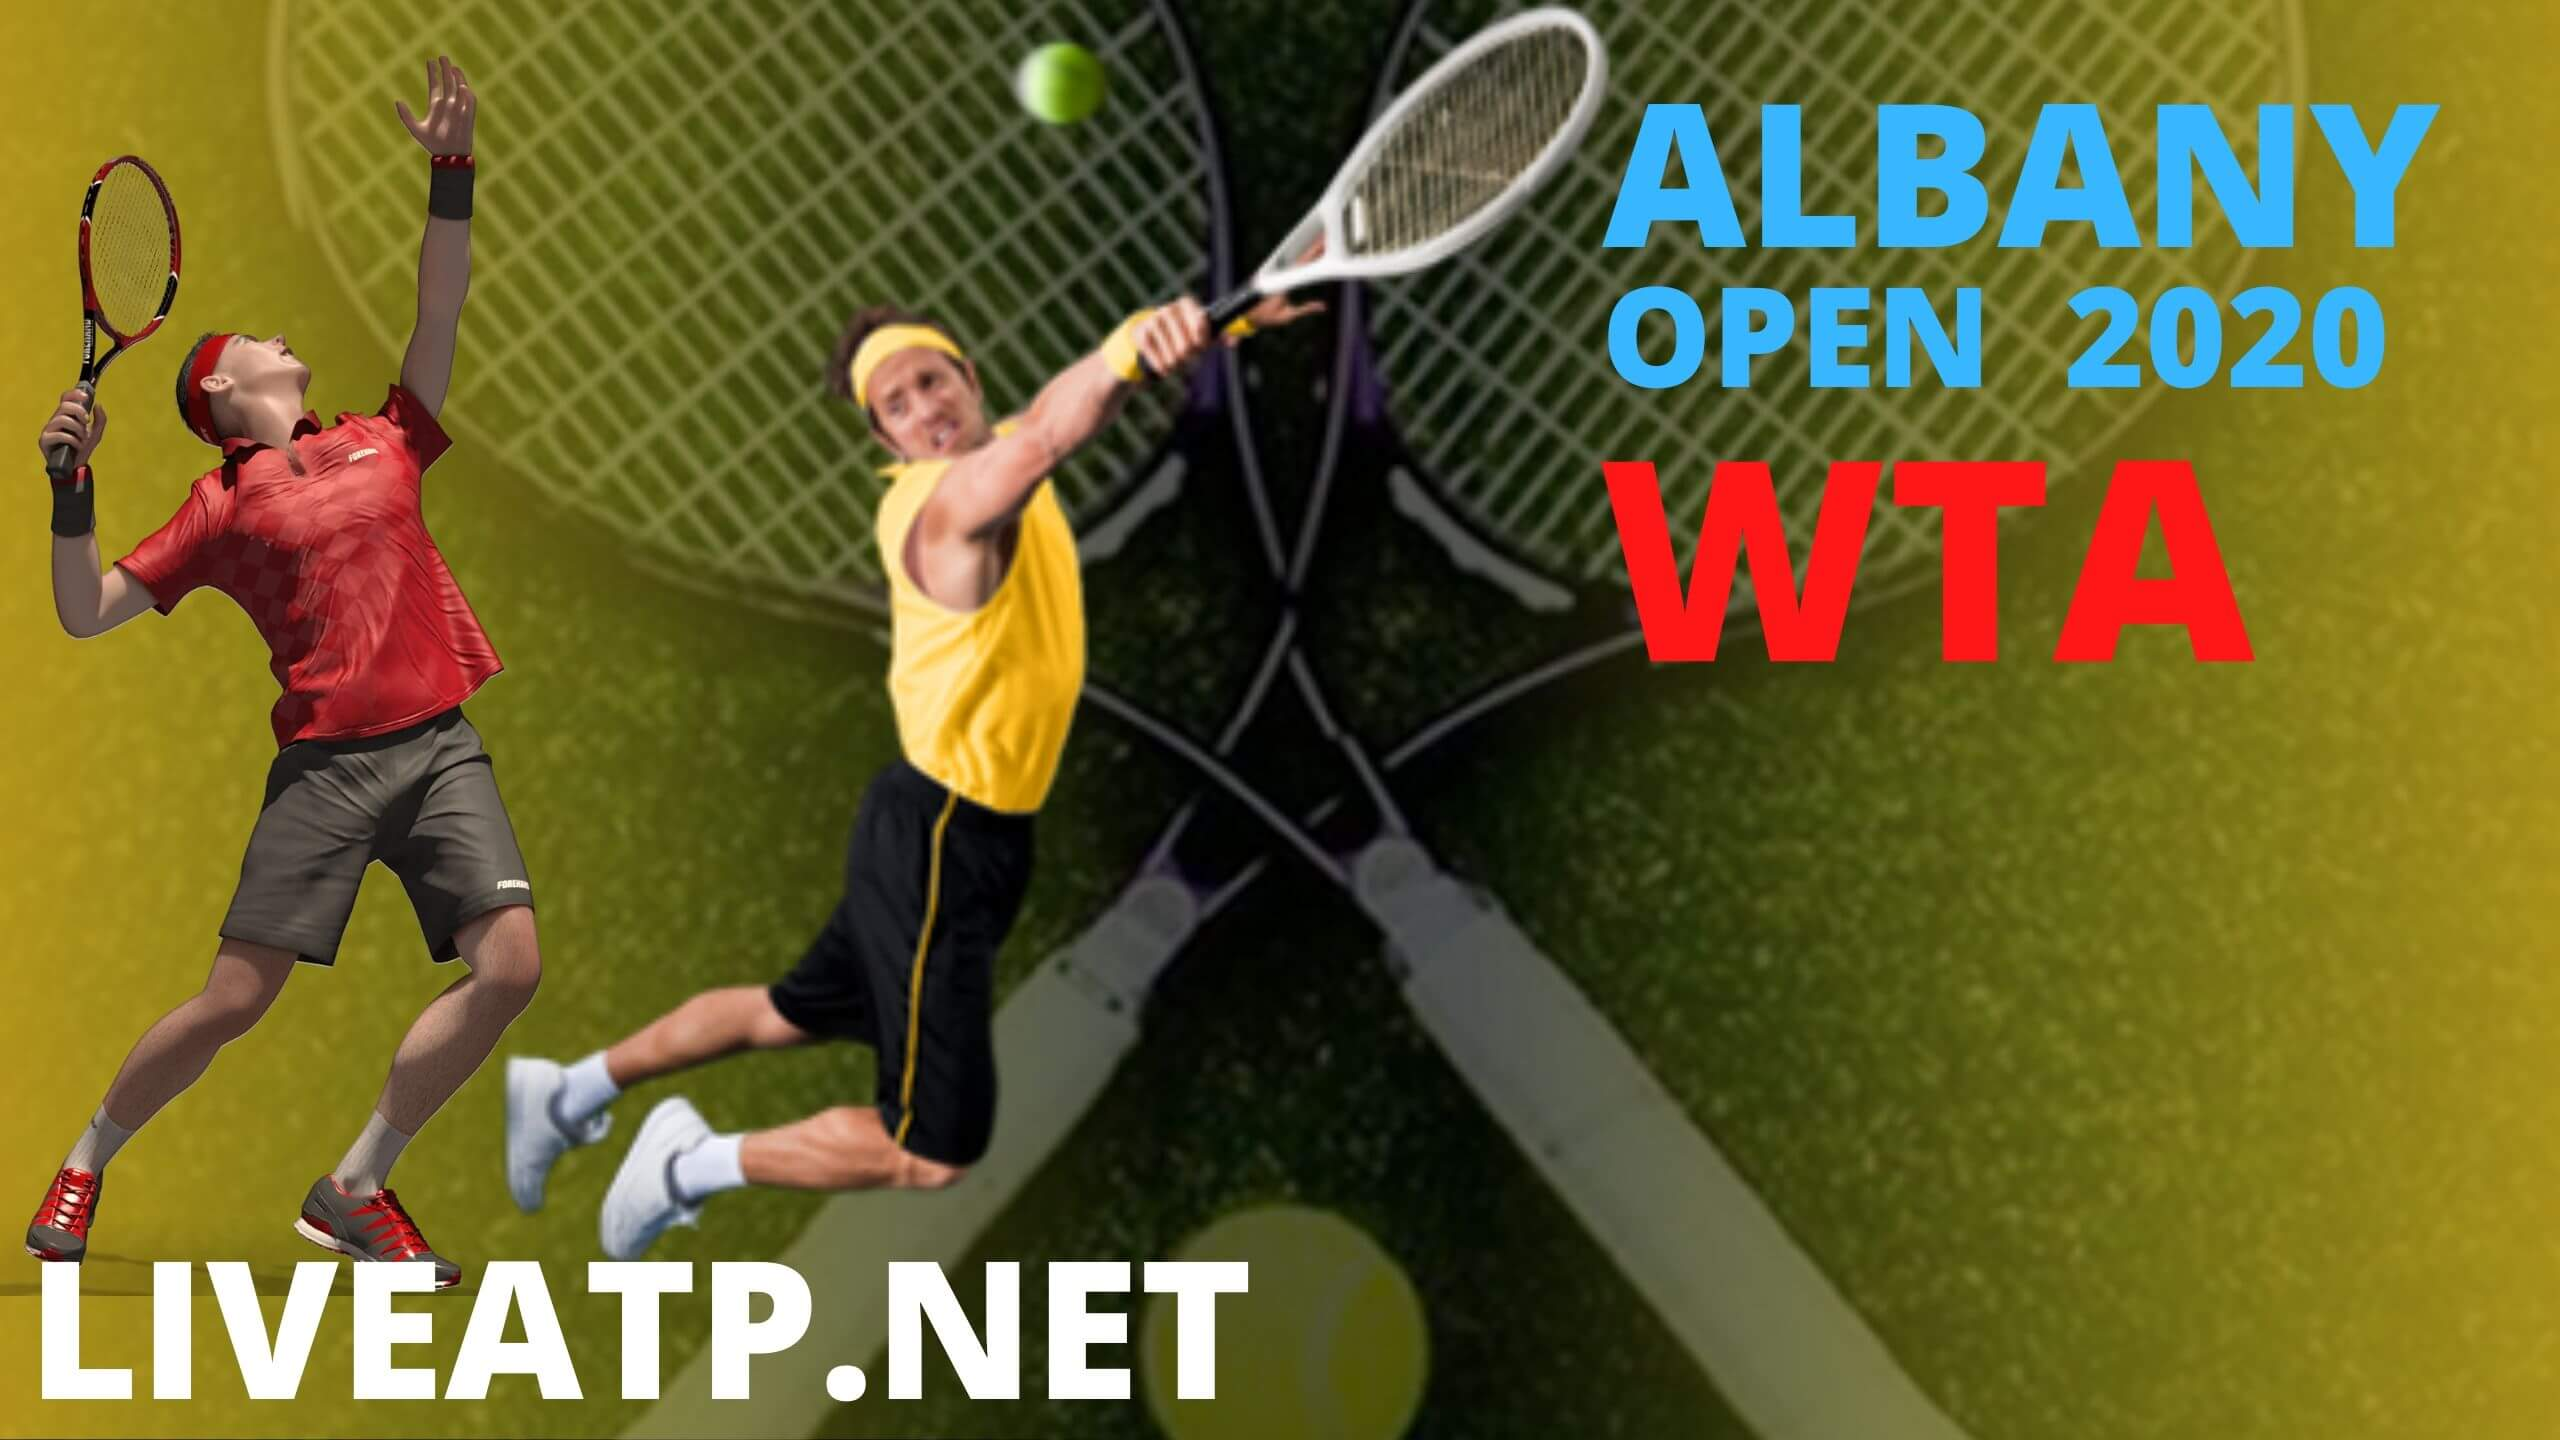 Albany Open Live Stream 2020 | Final